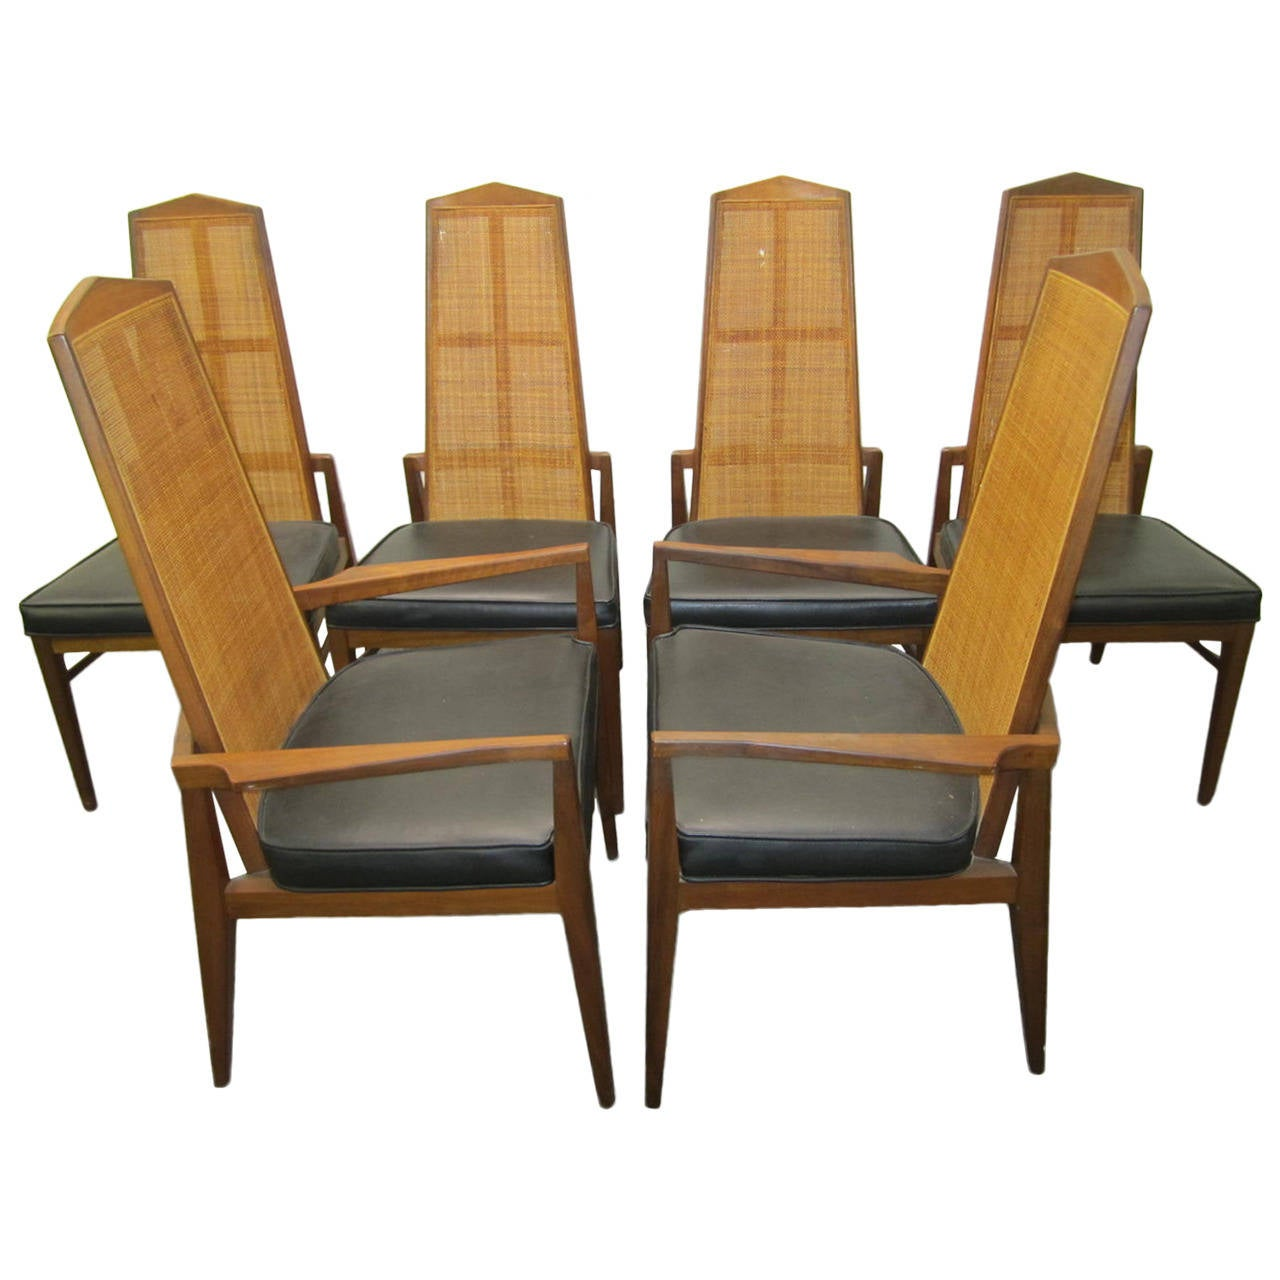 Cane Dining Chairs Six Walnut Foster And Mcdavid Cane Back Dining Chairs Mid